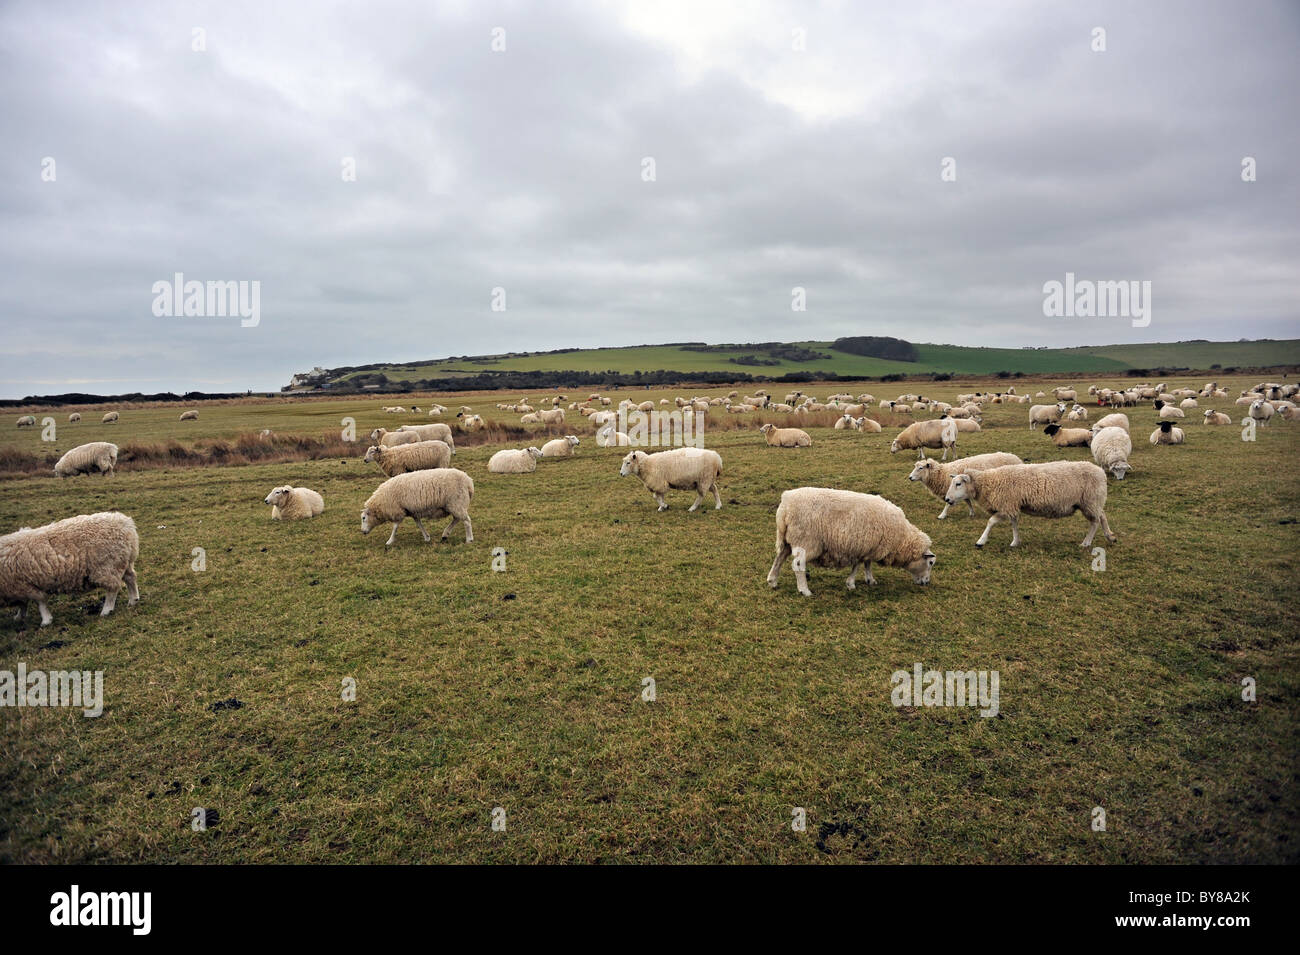 Sheep grazing at Cuckmere Haven, an area of flood plains in Sussex  where the river Cuckmere meets the English Channel Stock Photo